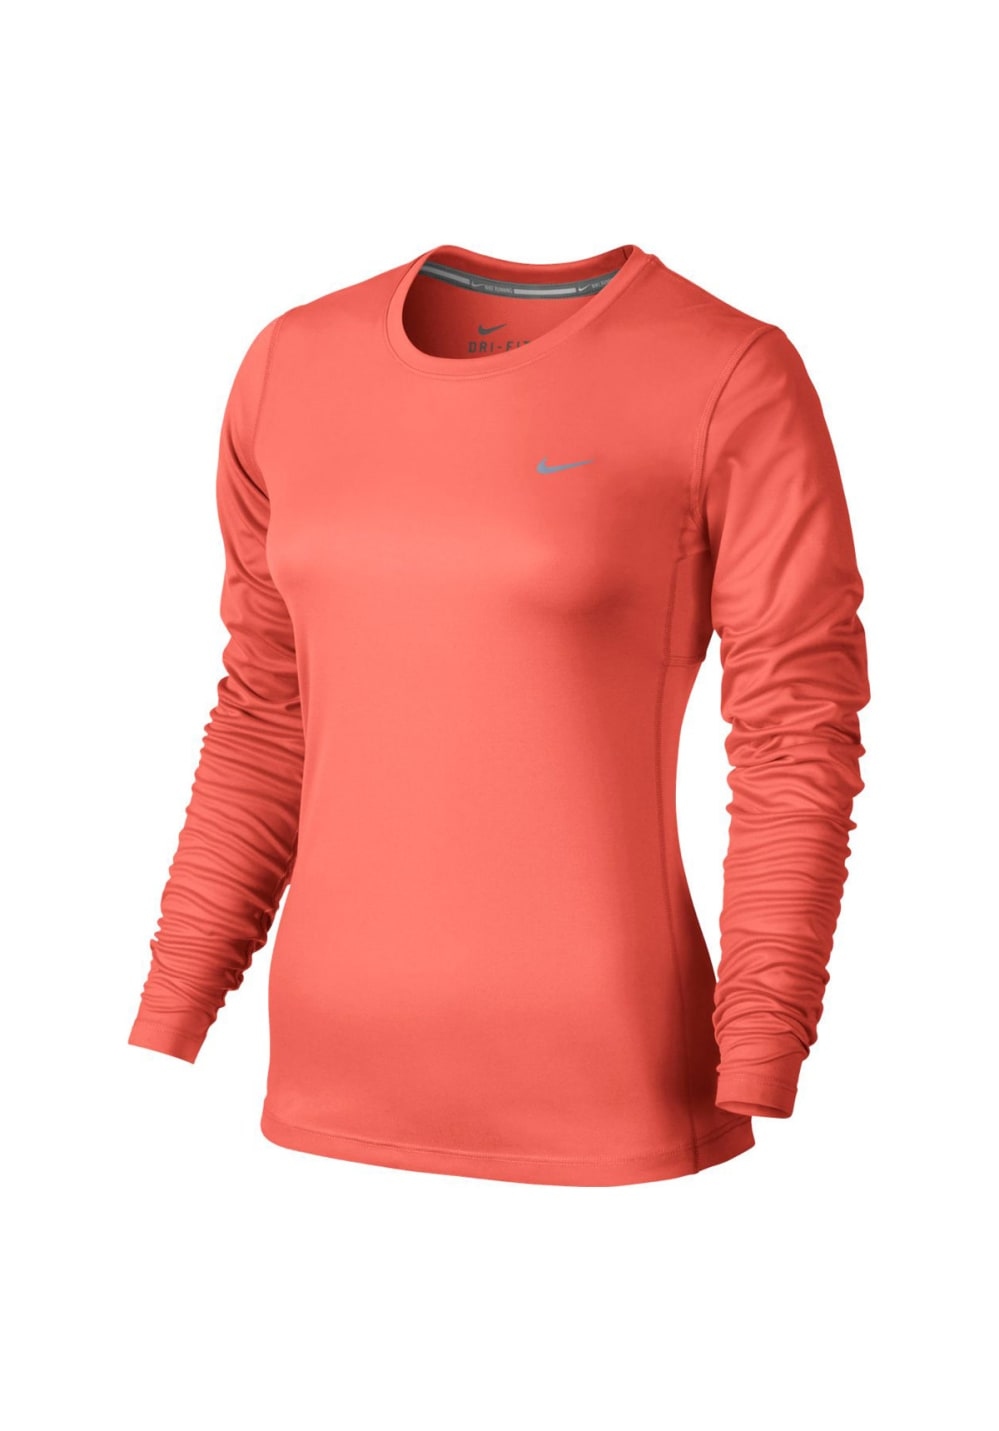 e603890a Red Nike Long Sleeve Shirt Womens - Aztec Stone and Reclamations